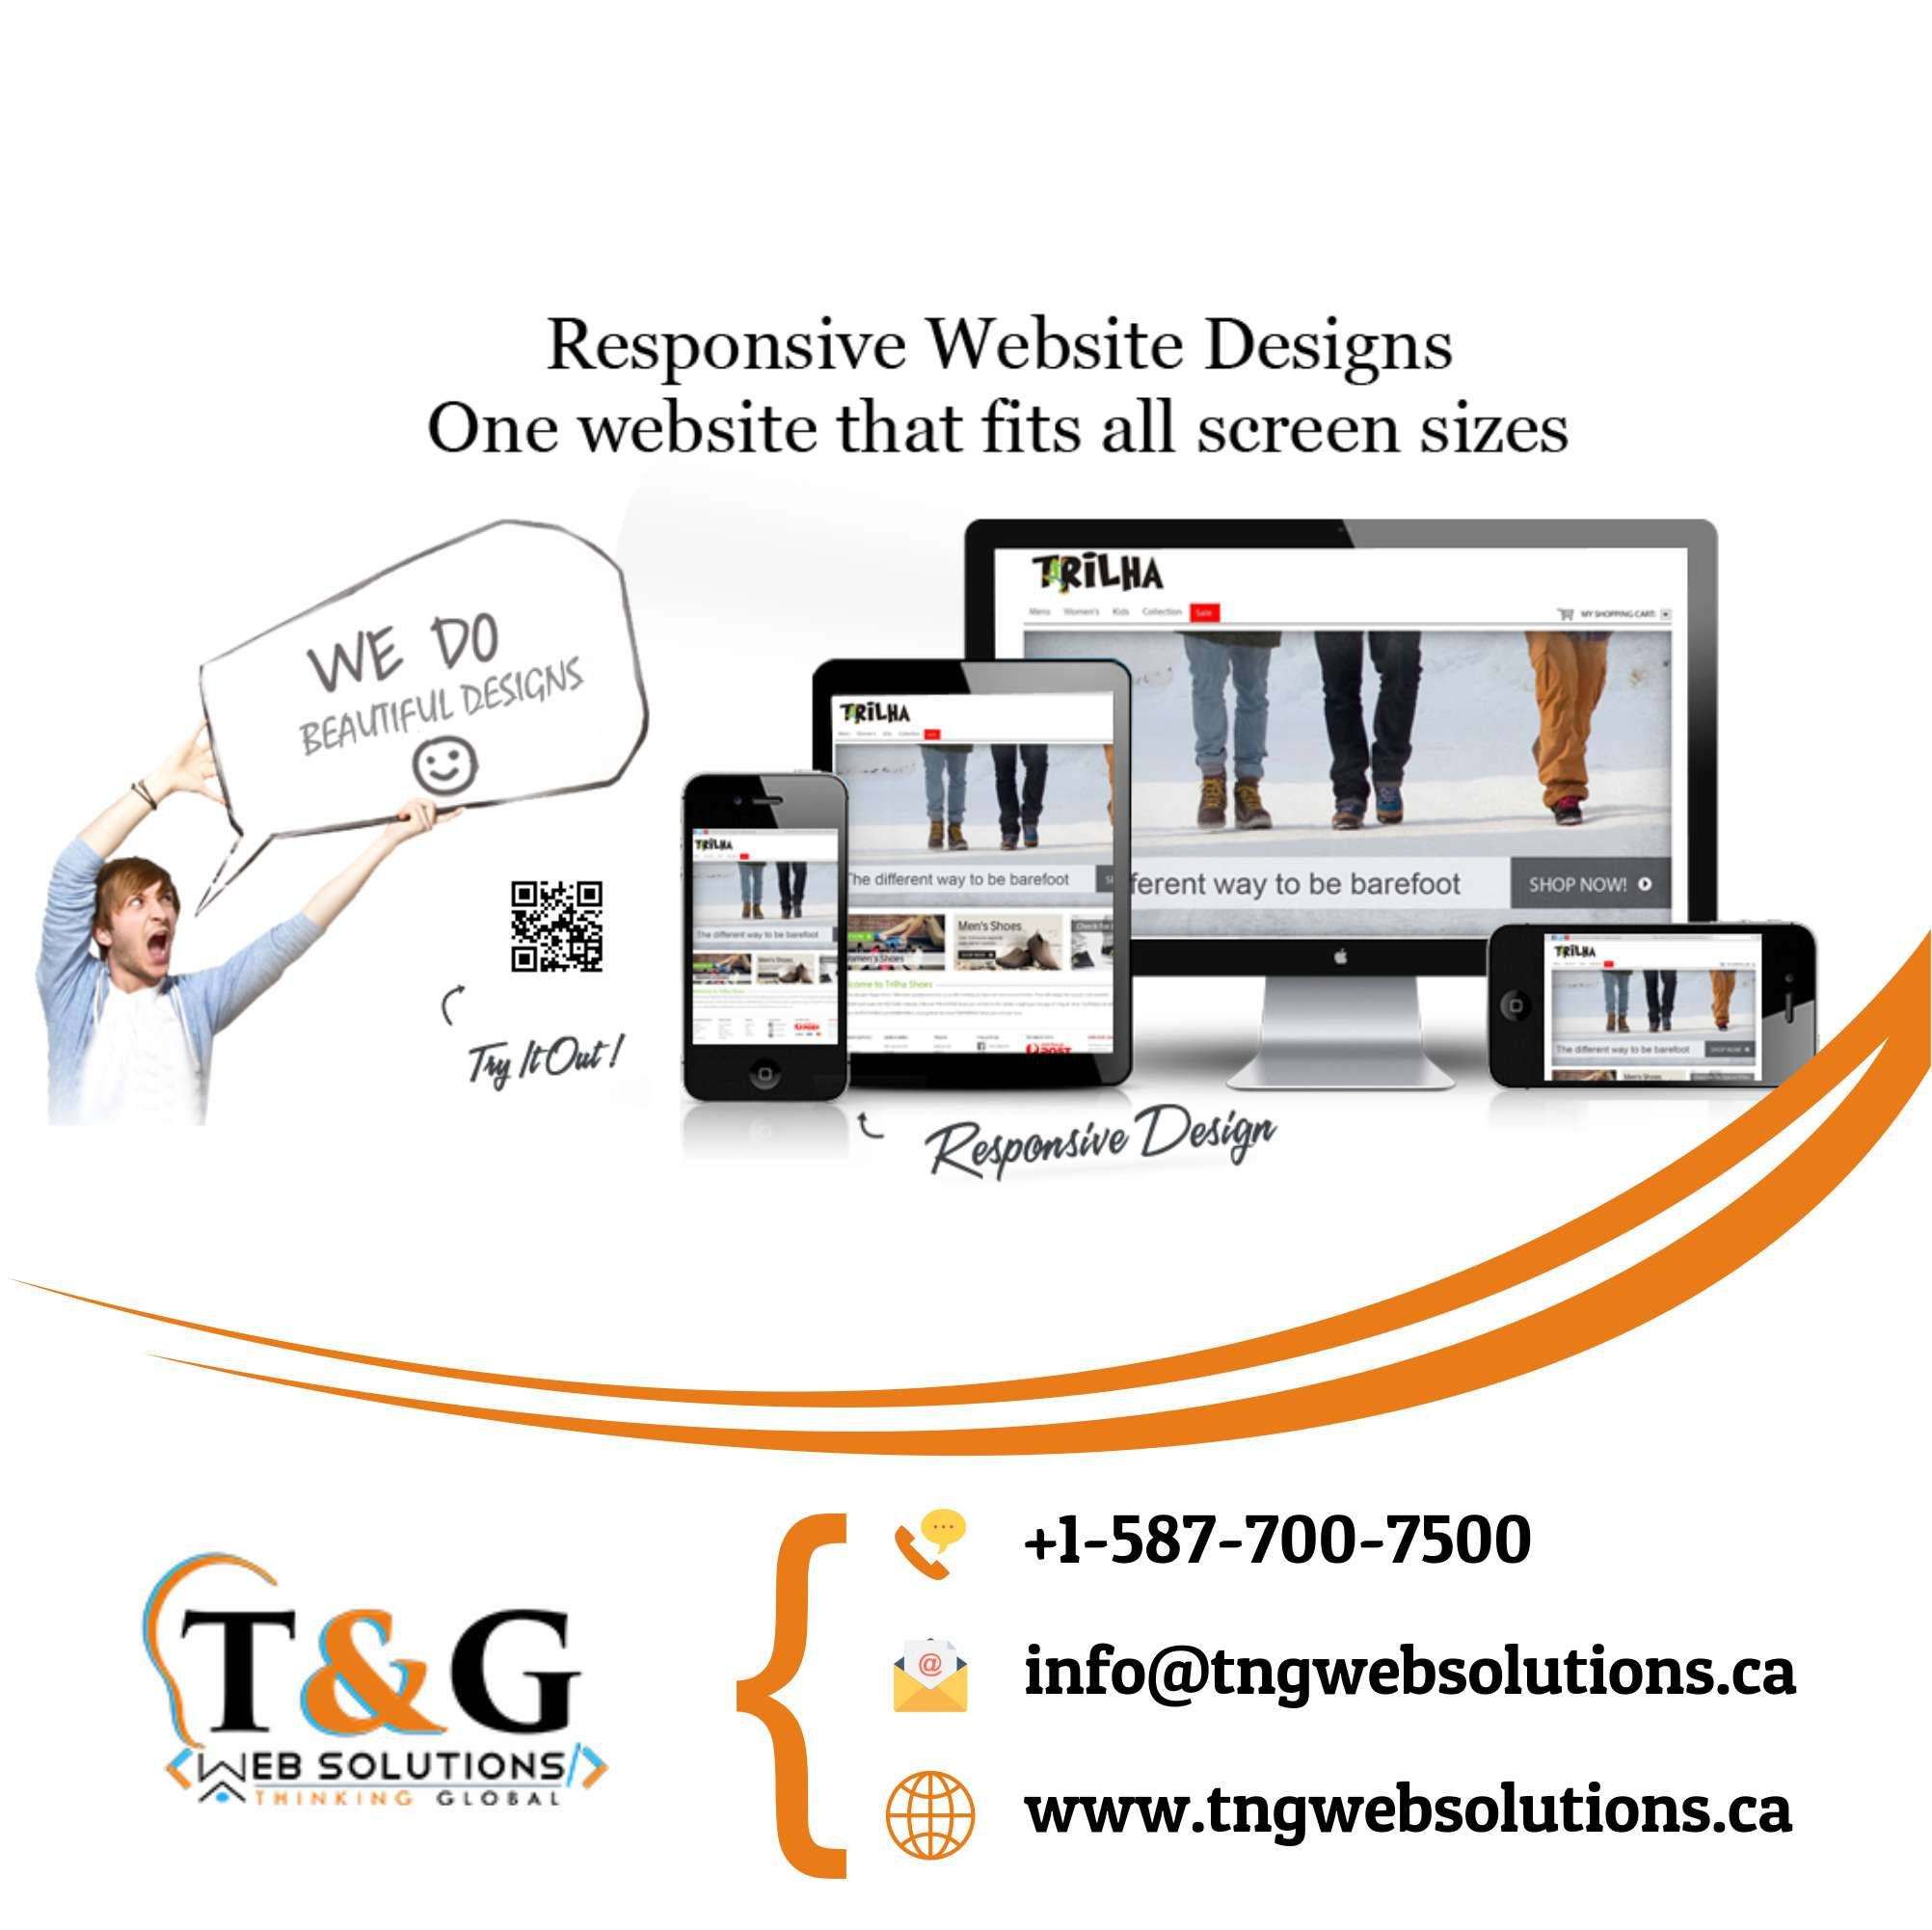 T G Web Solutions Web Design Choosing The Right Web Design Company Can Make A World Of Website Design Services Web Design Company Digital Marketing Services